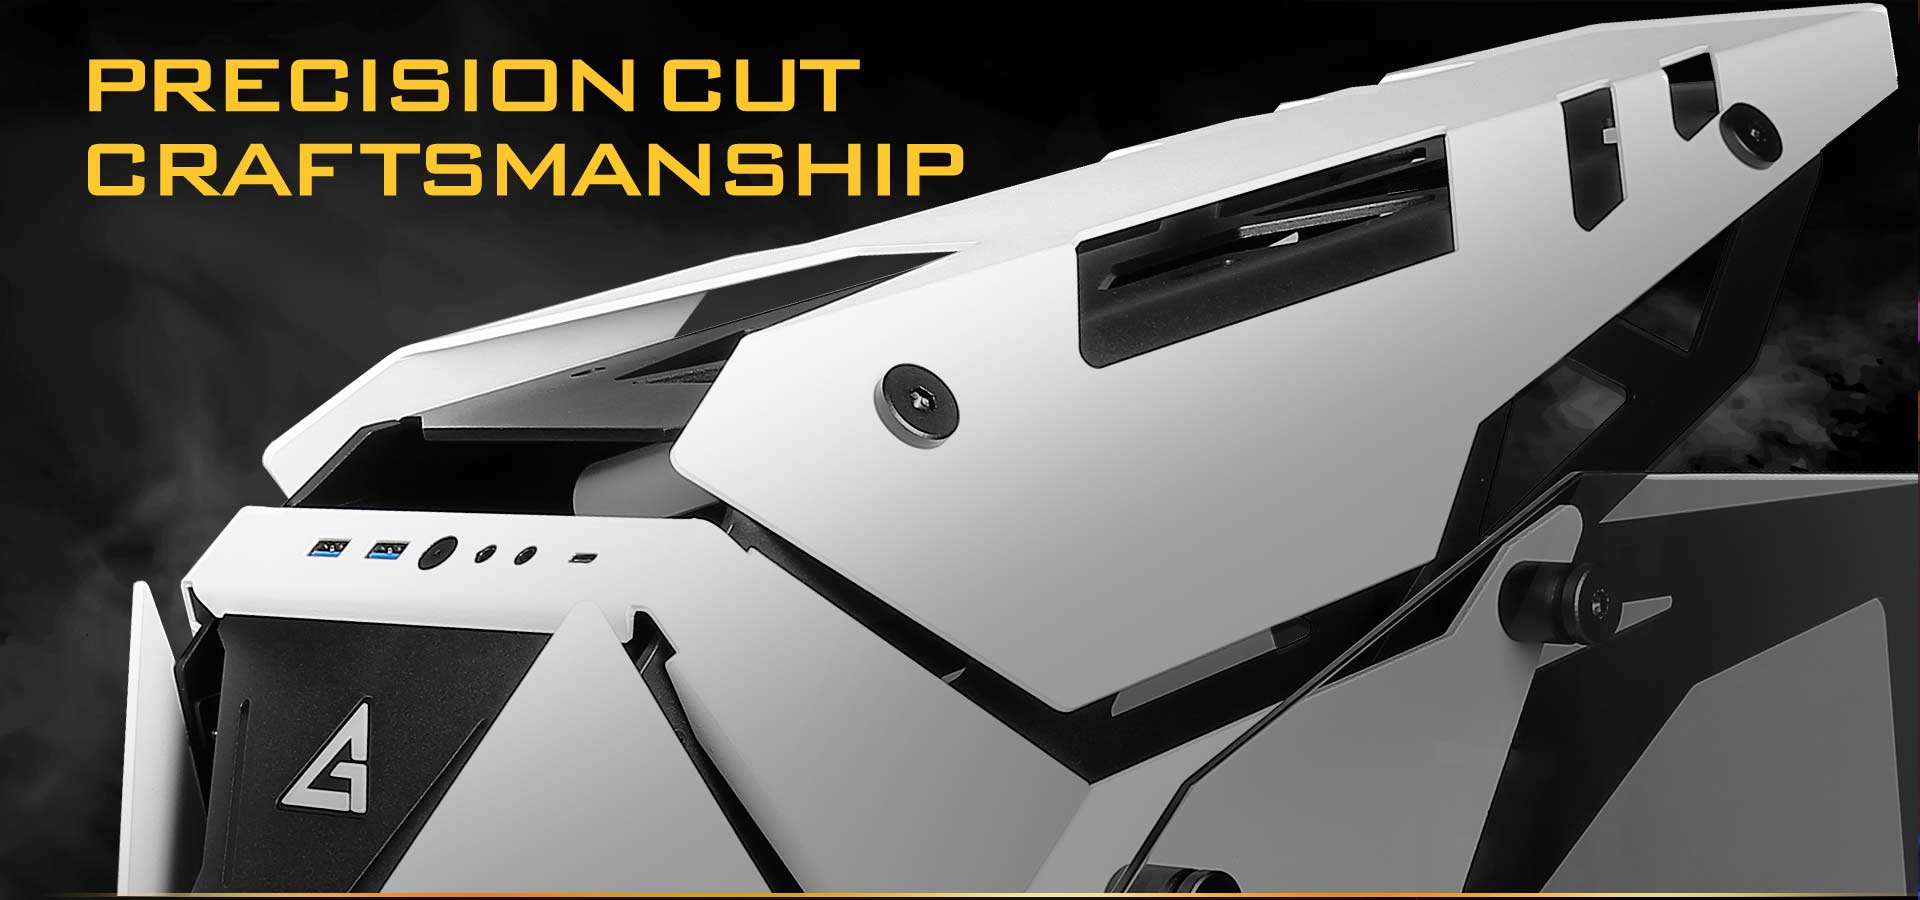 Closeup of the Top of the Antec Case, Angled to the Left. Above It Is Text That Reads: PRECISION-CUT CRAFTSMANSHIP